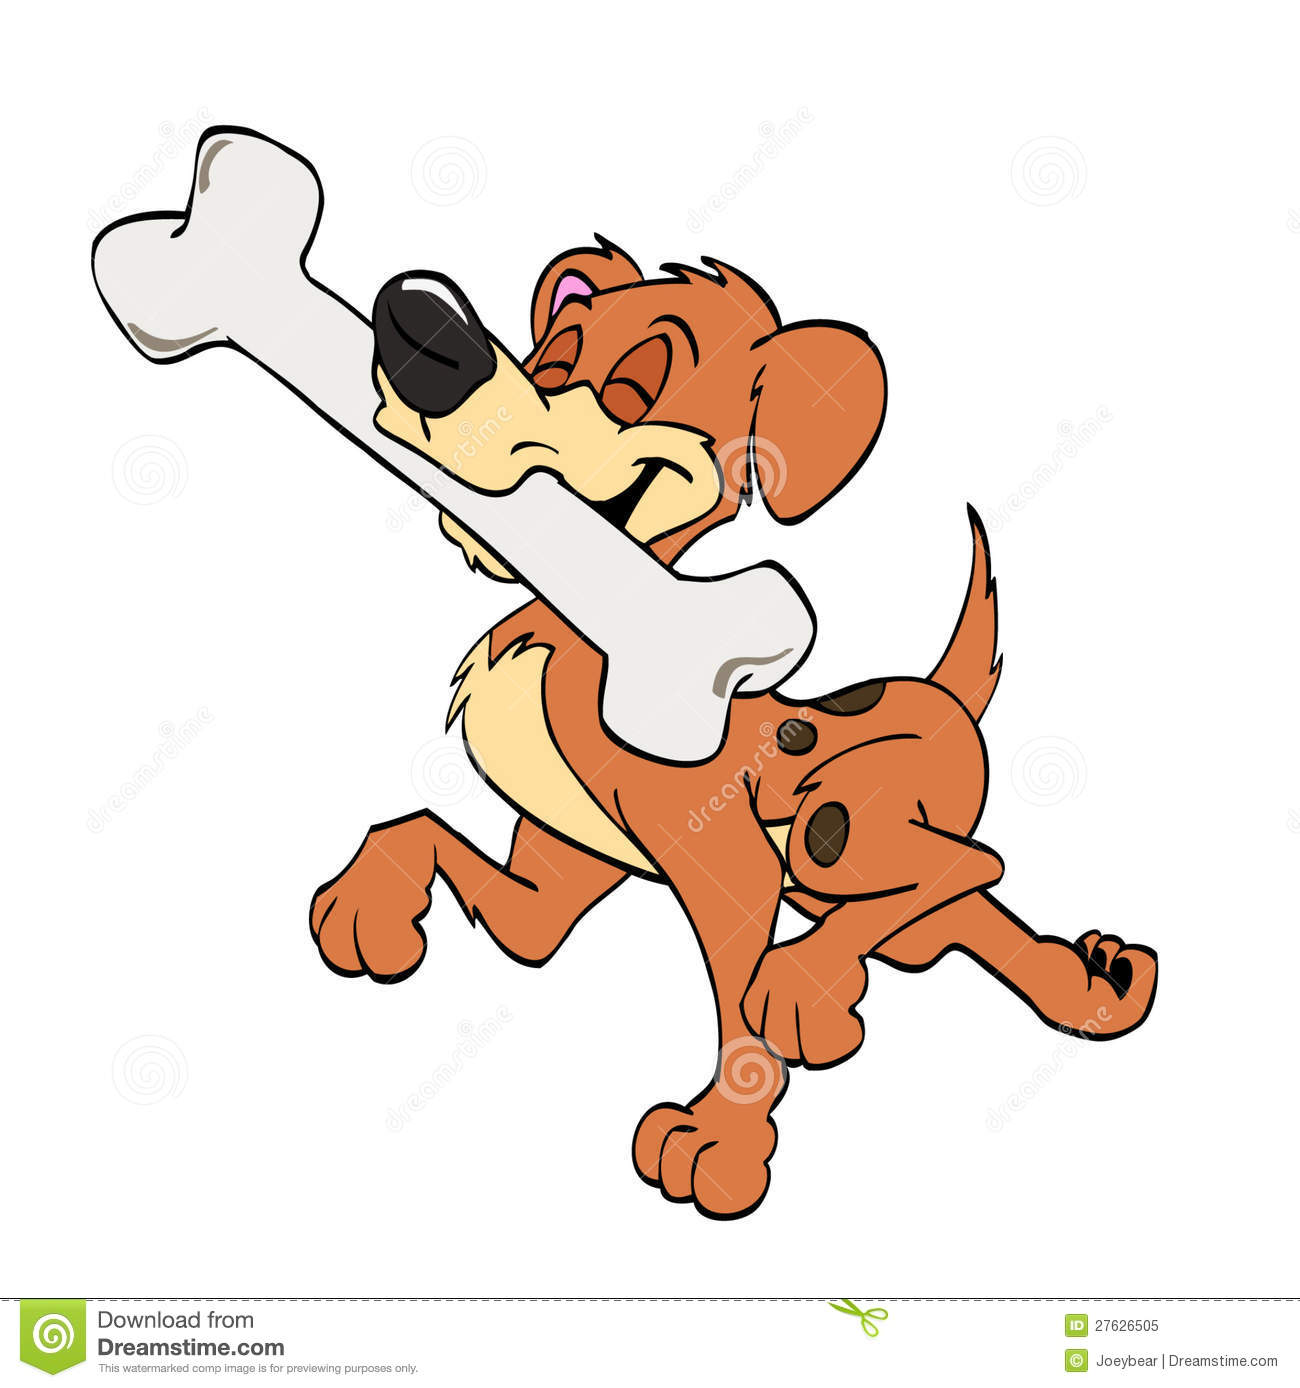 Proud Dog With Bone Royalty Free Stock Photo - Image: 27626505